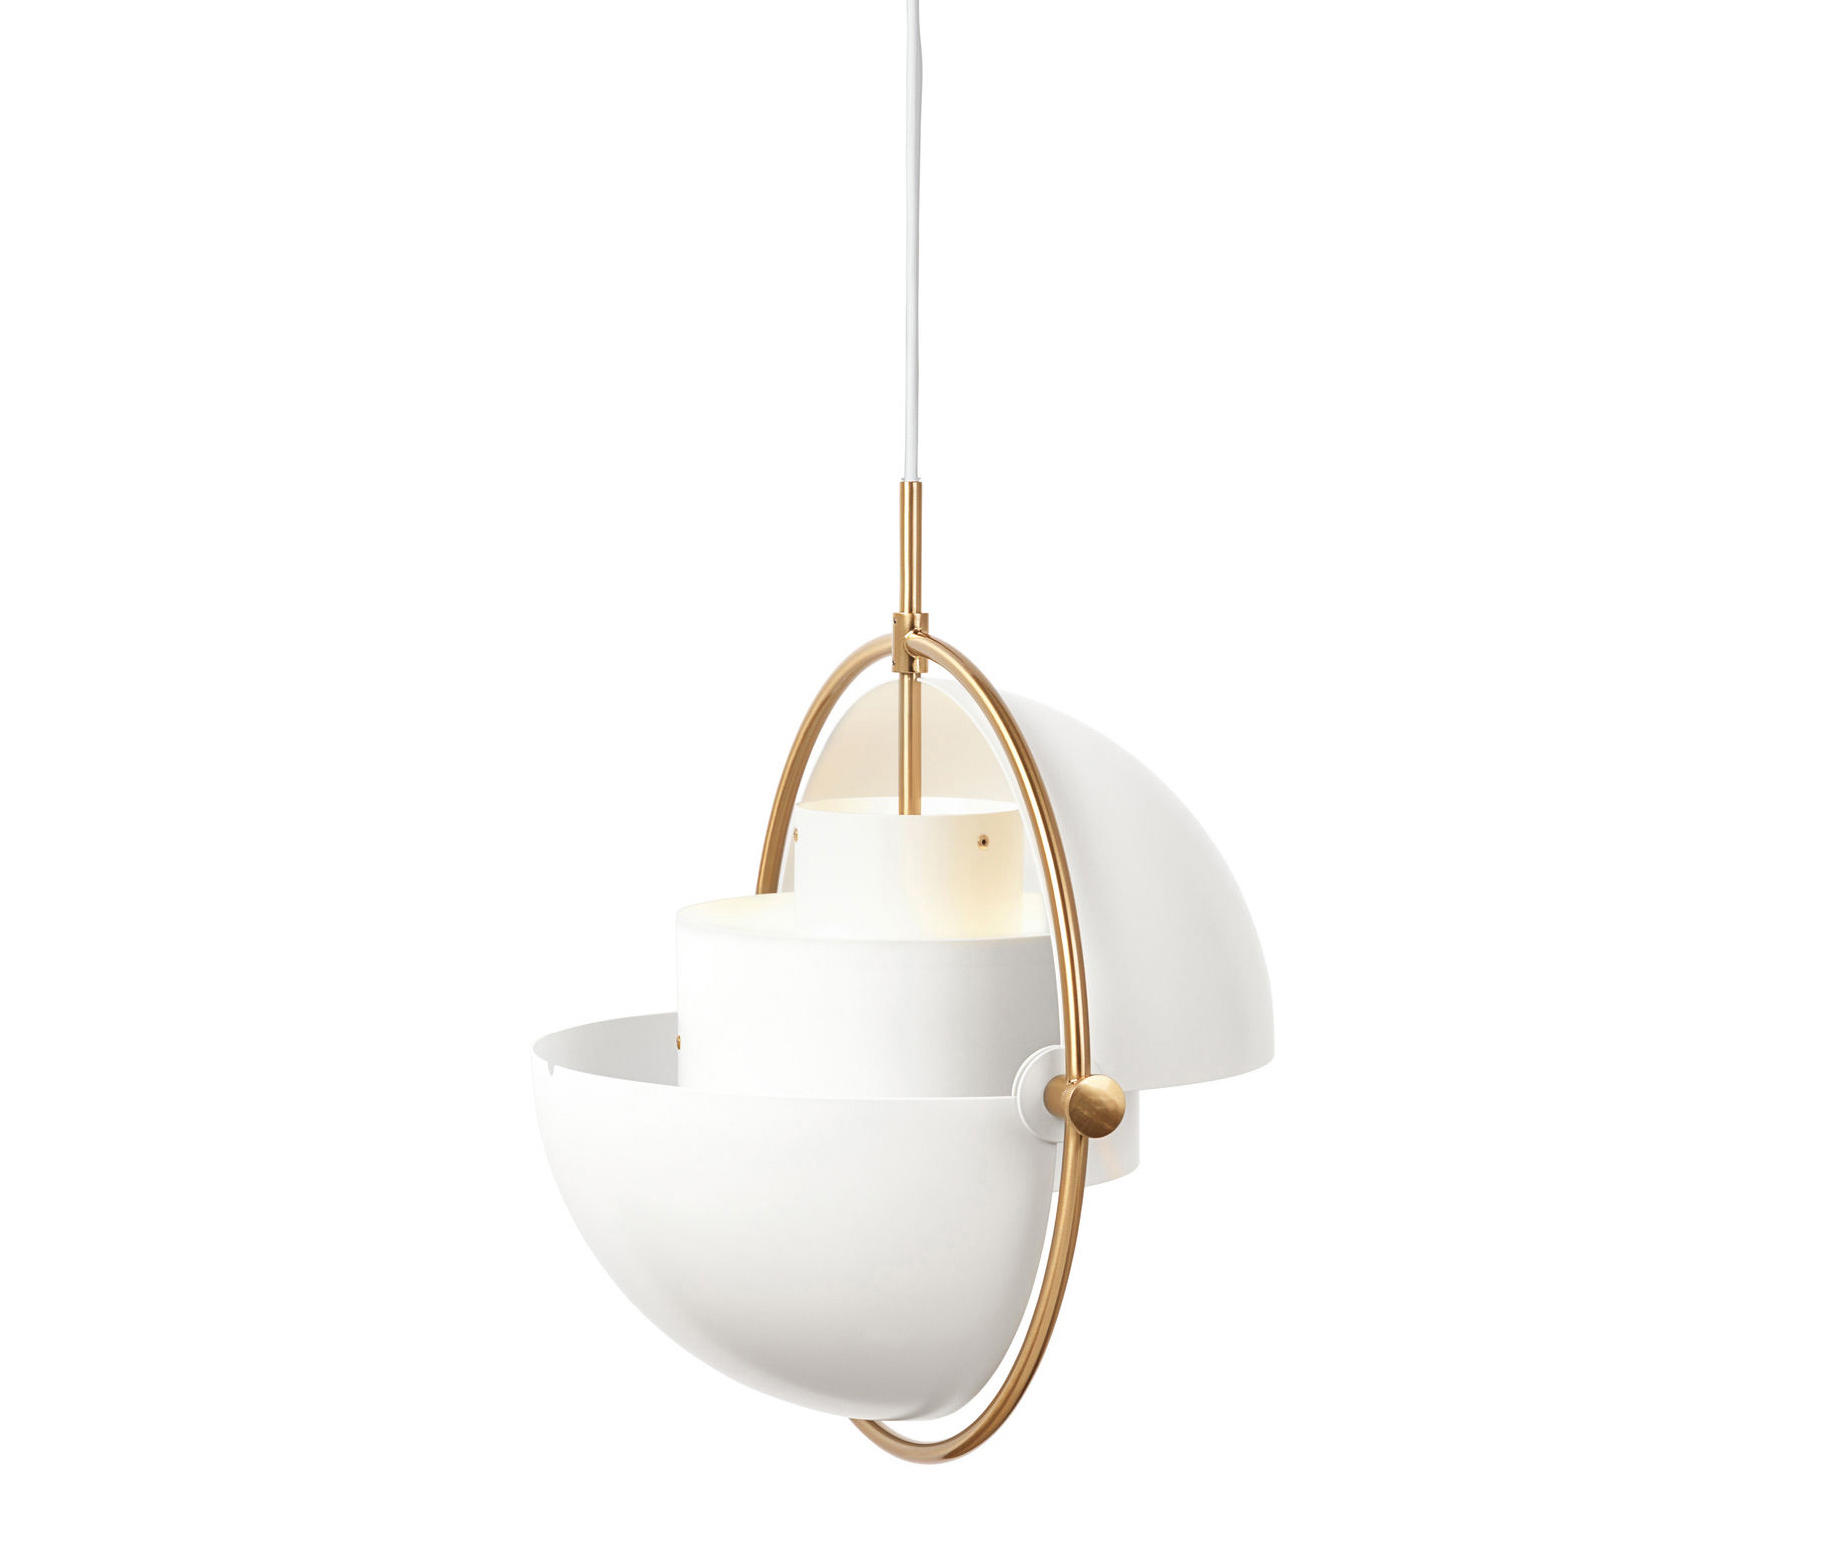 MULTI-LITE - Suspended lights from GUBI | Architonic